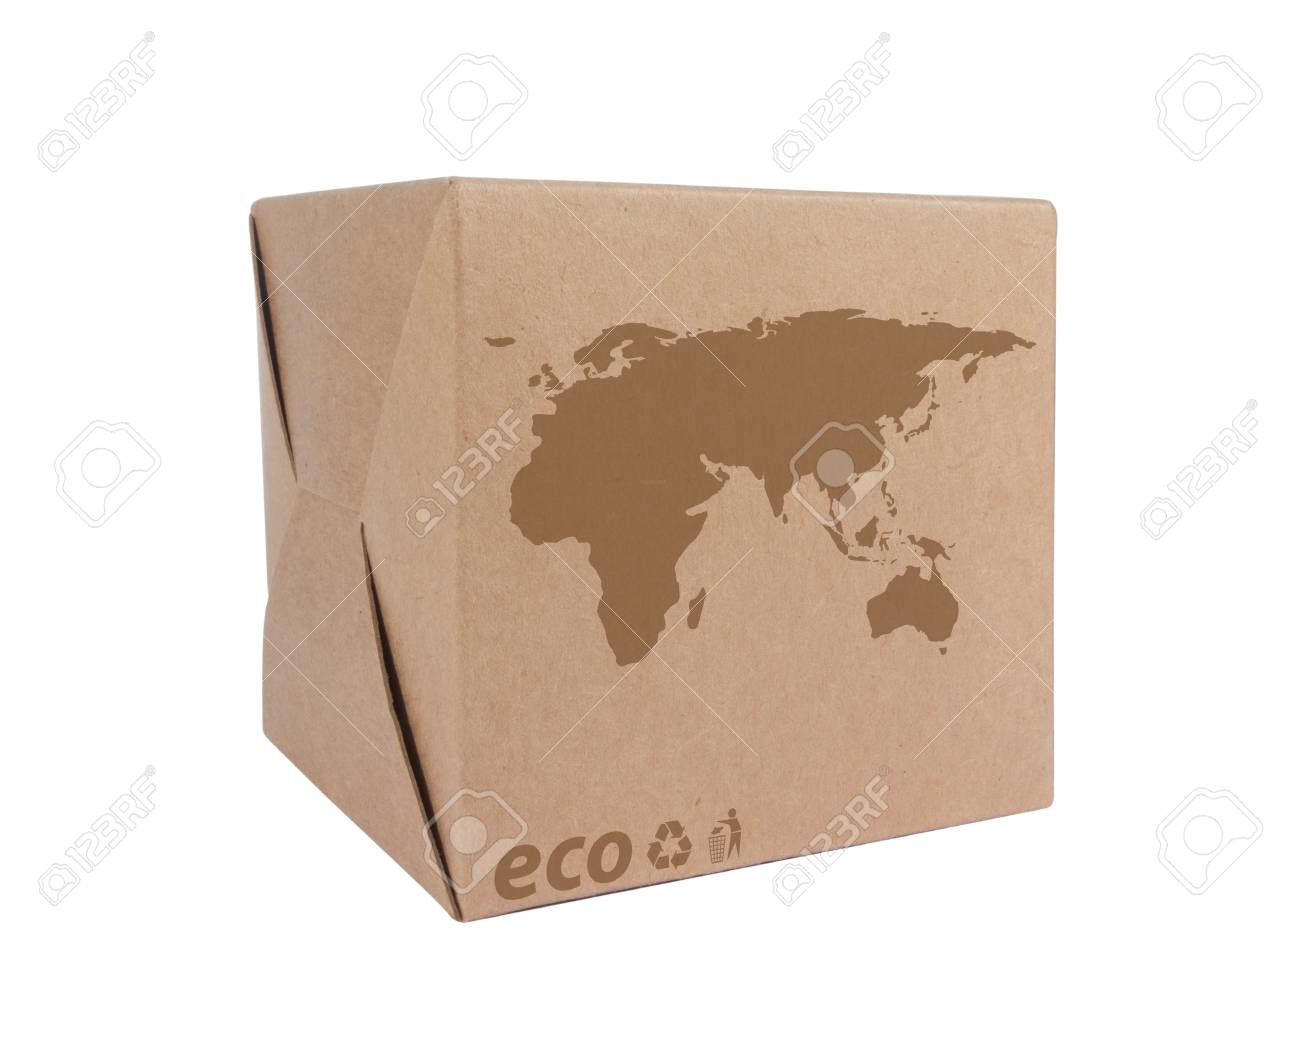 Cardboard box front side with Icon ecological map Euro Asia isolated on white background Stock Photo - 14411606